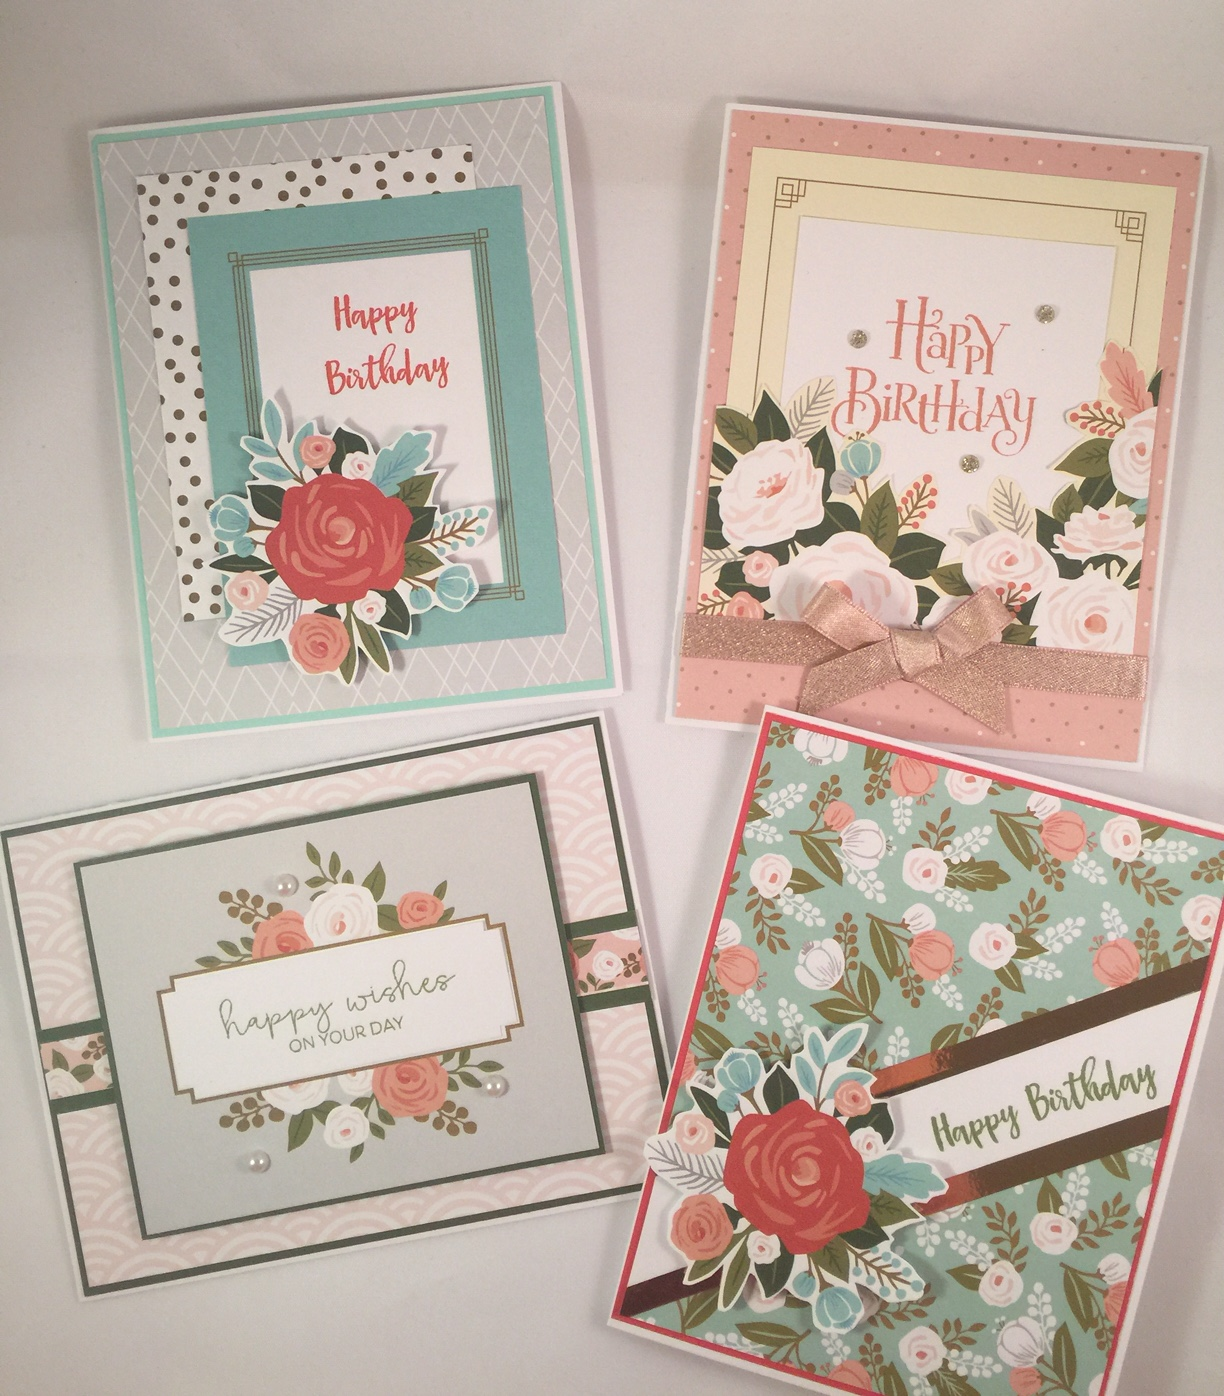 I Decided To Make A Birthday Card Assortment To Put In My Etsy Shop. As I  Was Going Through My Papers, I Settled On The Hello Lovely Paper Packet  From An ...